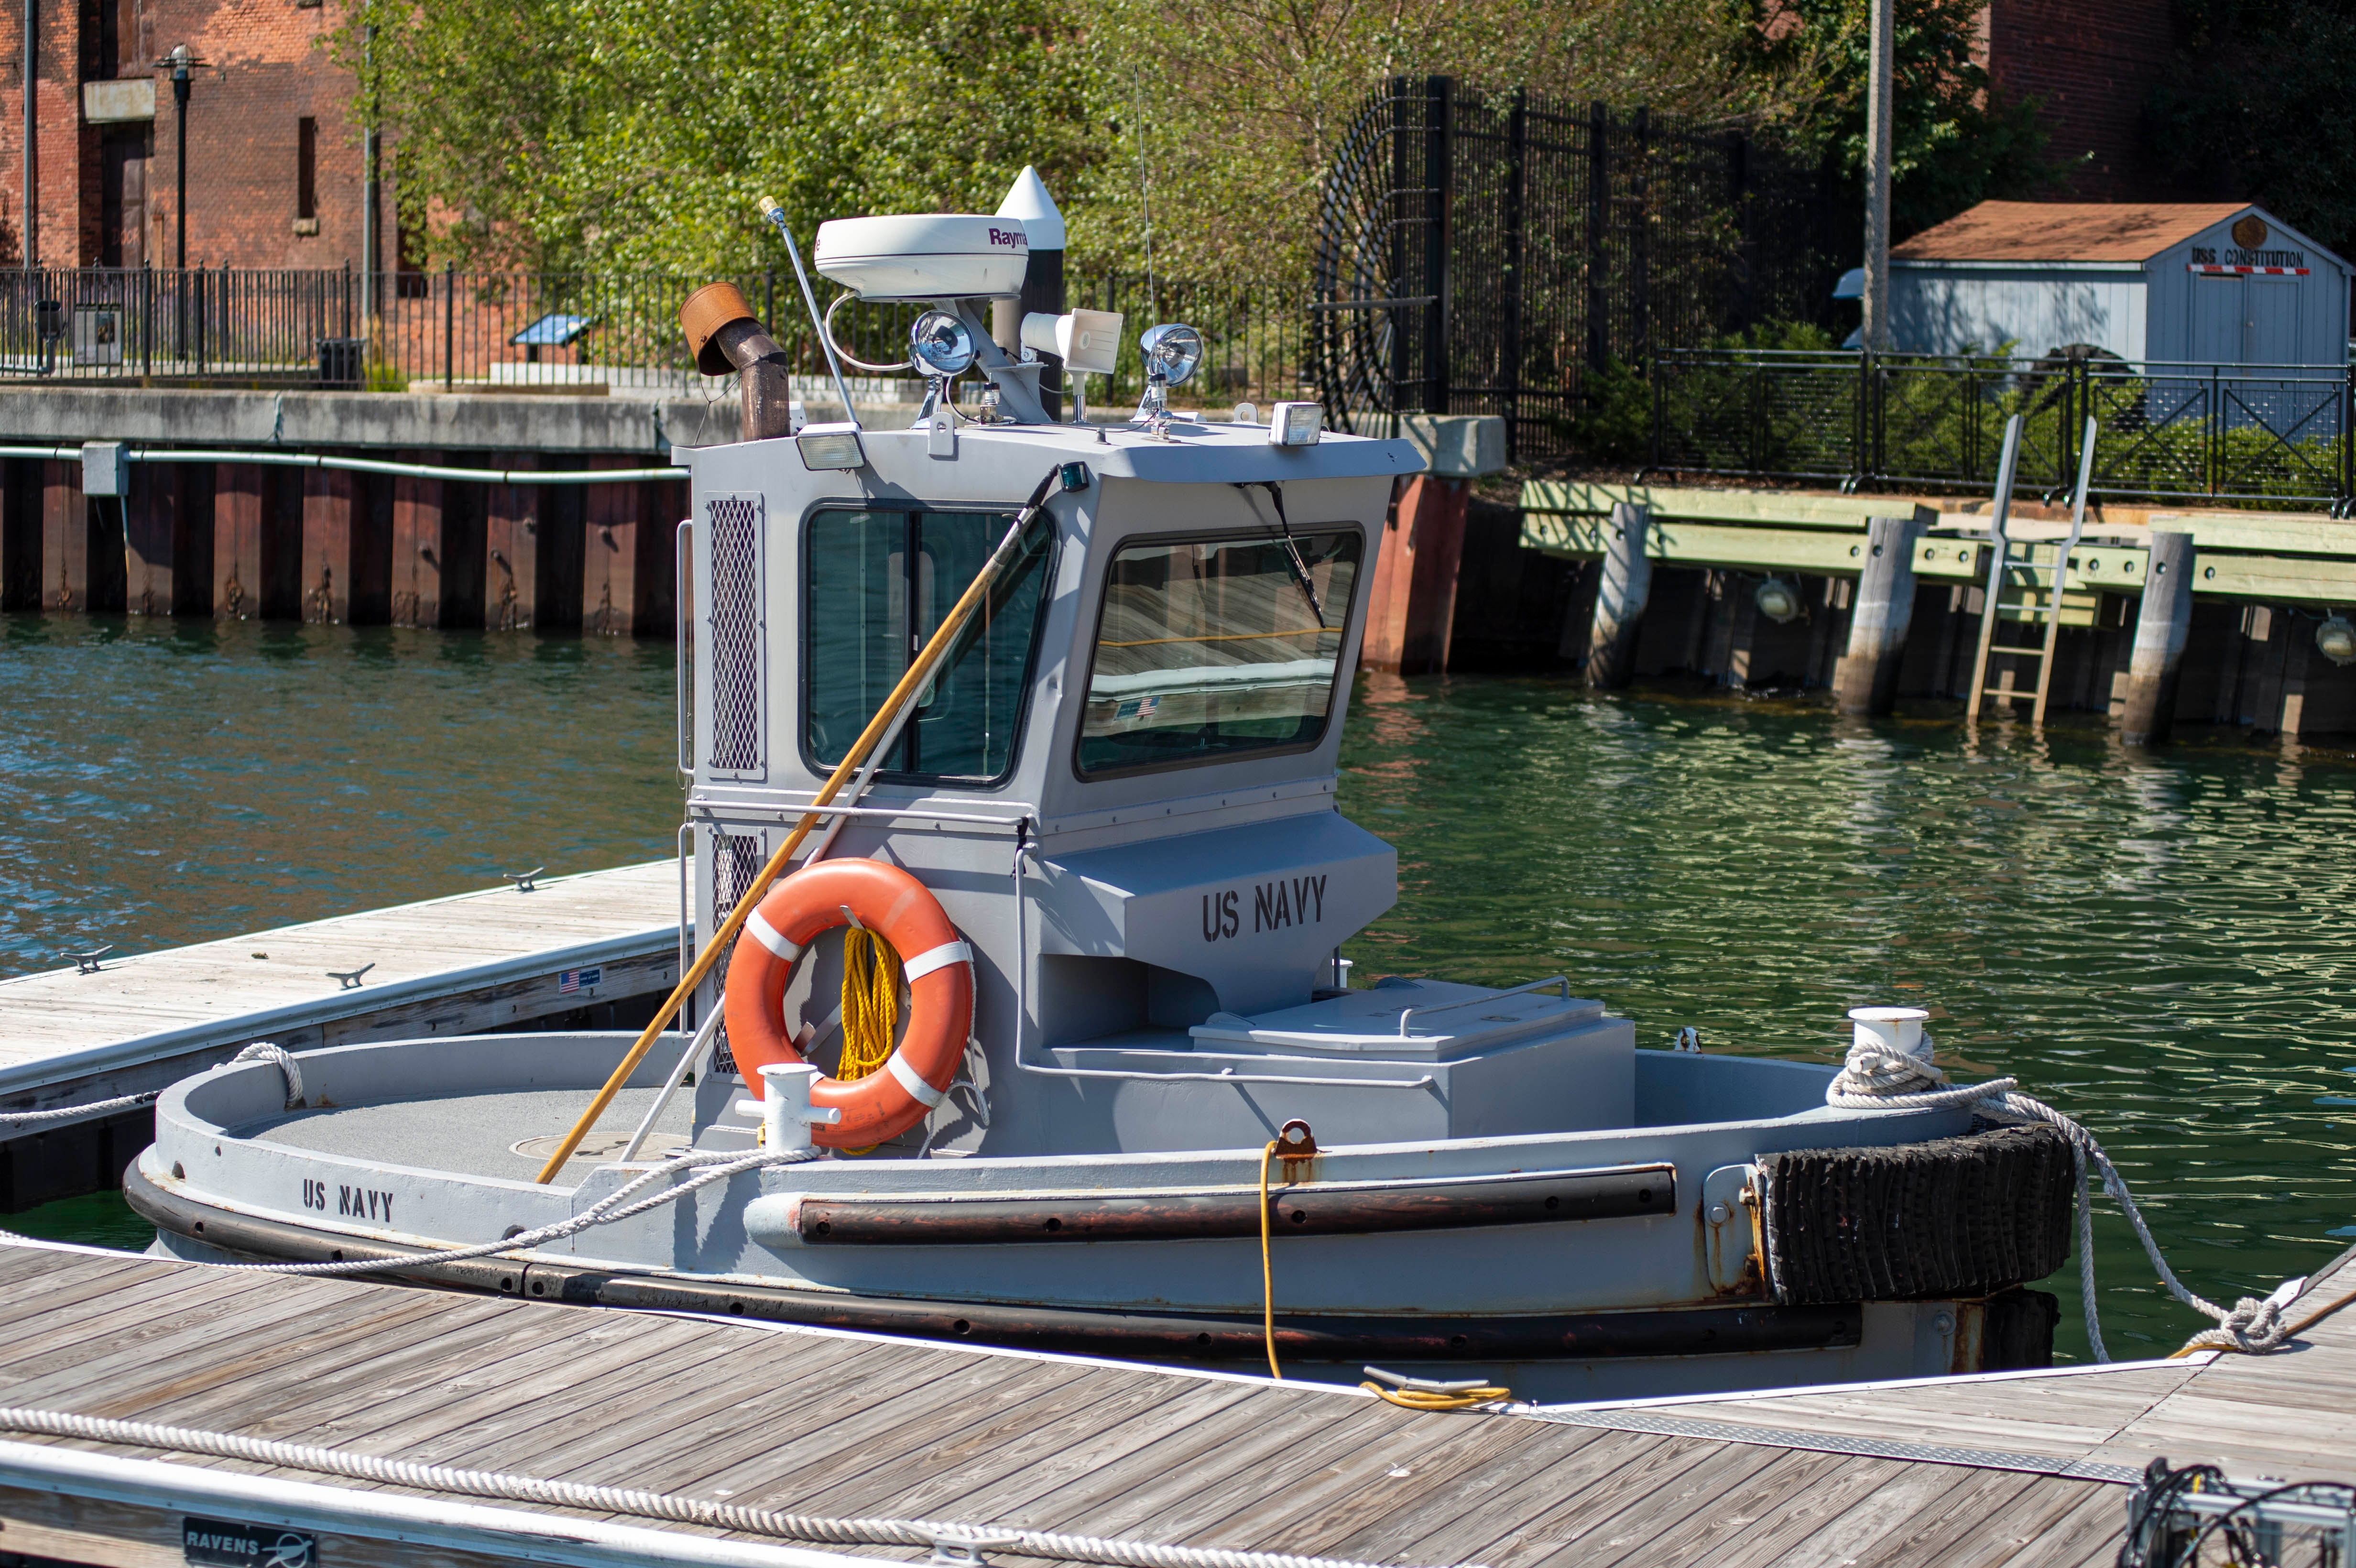 Meet the Navy's most adorable boat: the Boomin' Beaver